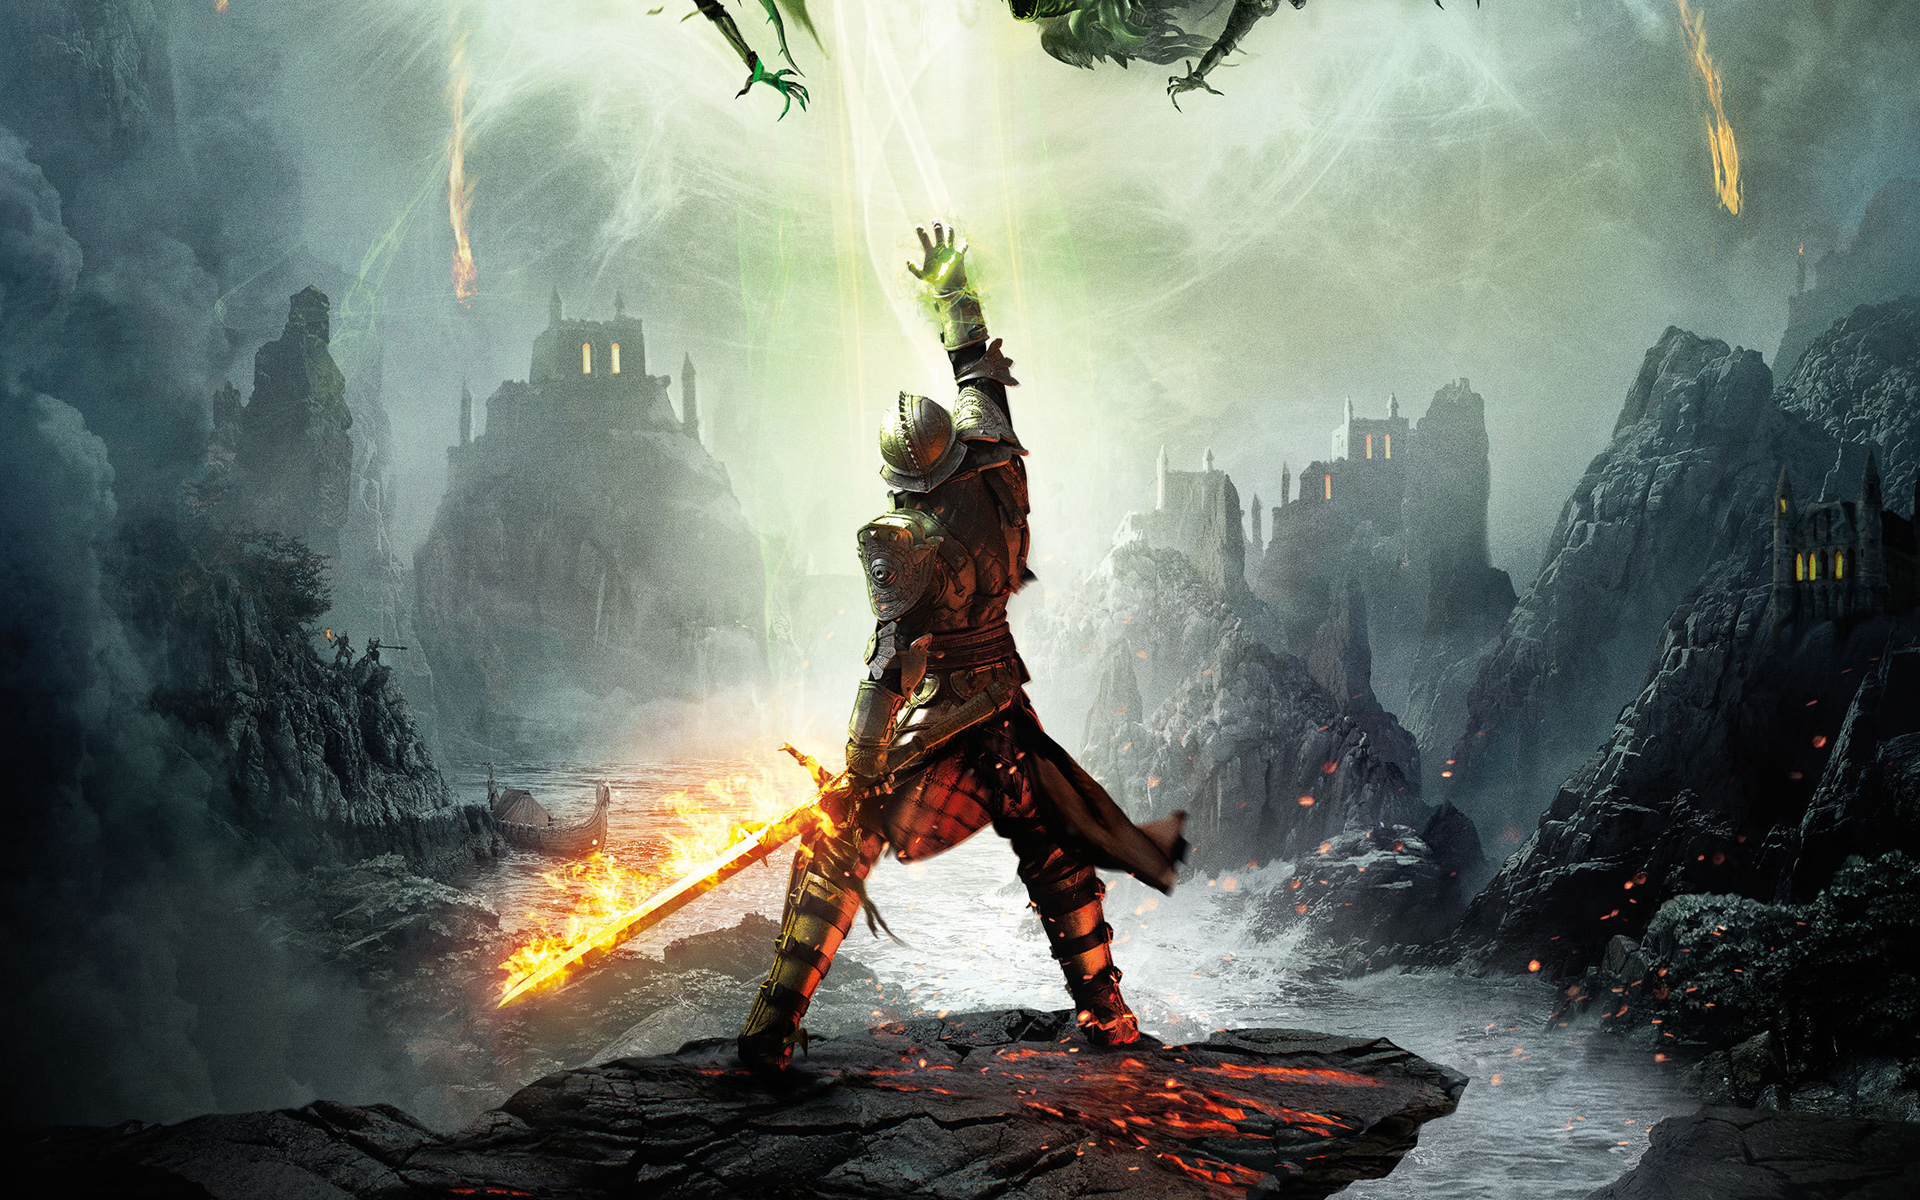 HD Wallpapers Dragon Age Inquisition 2014 Game